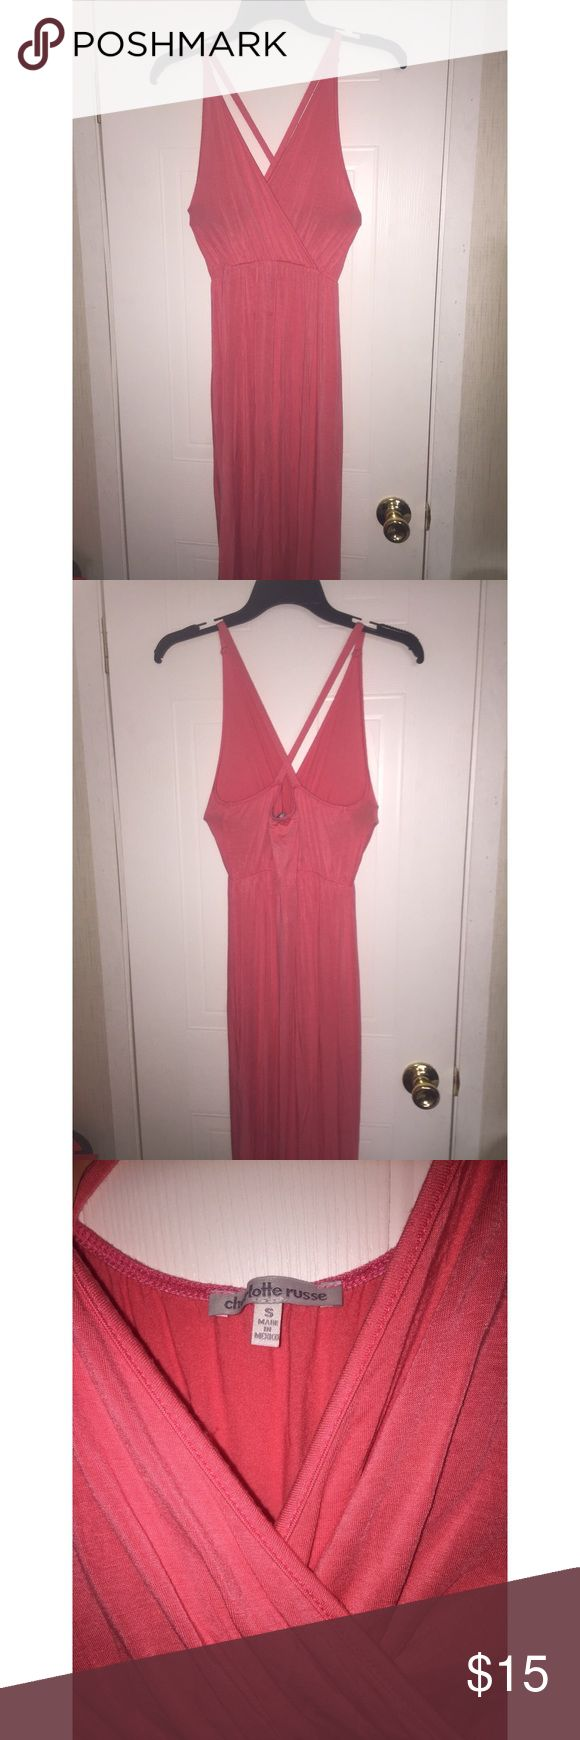 Charlotte Russe coral maxi dress Coral maxi dress with two slits. Charlotte Russe Dresses Maxi